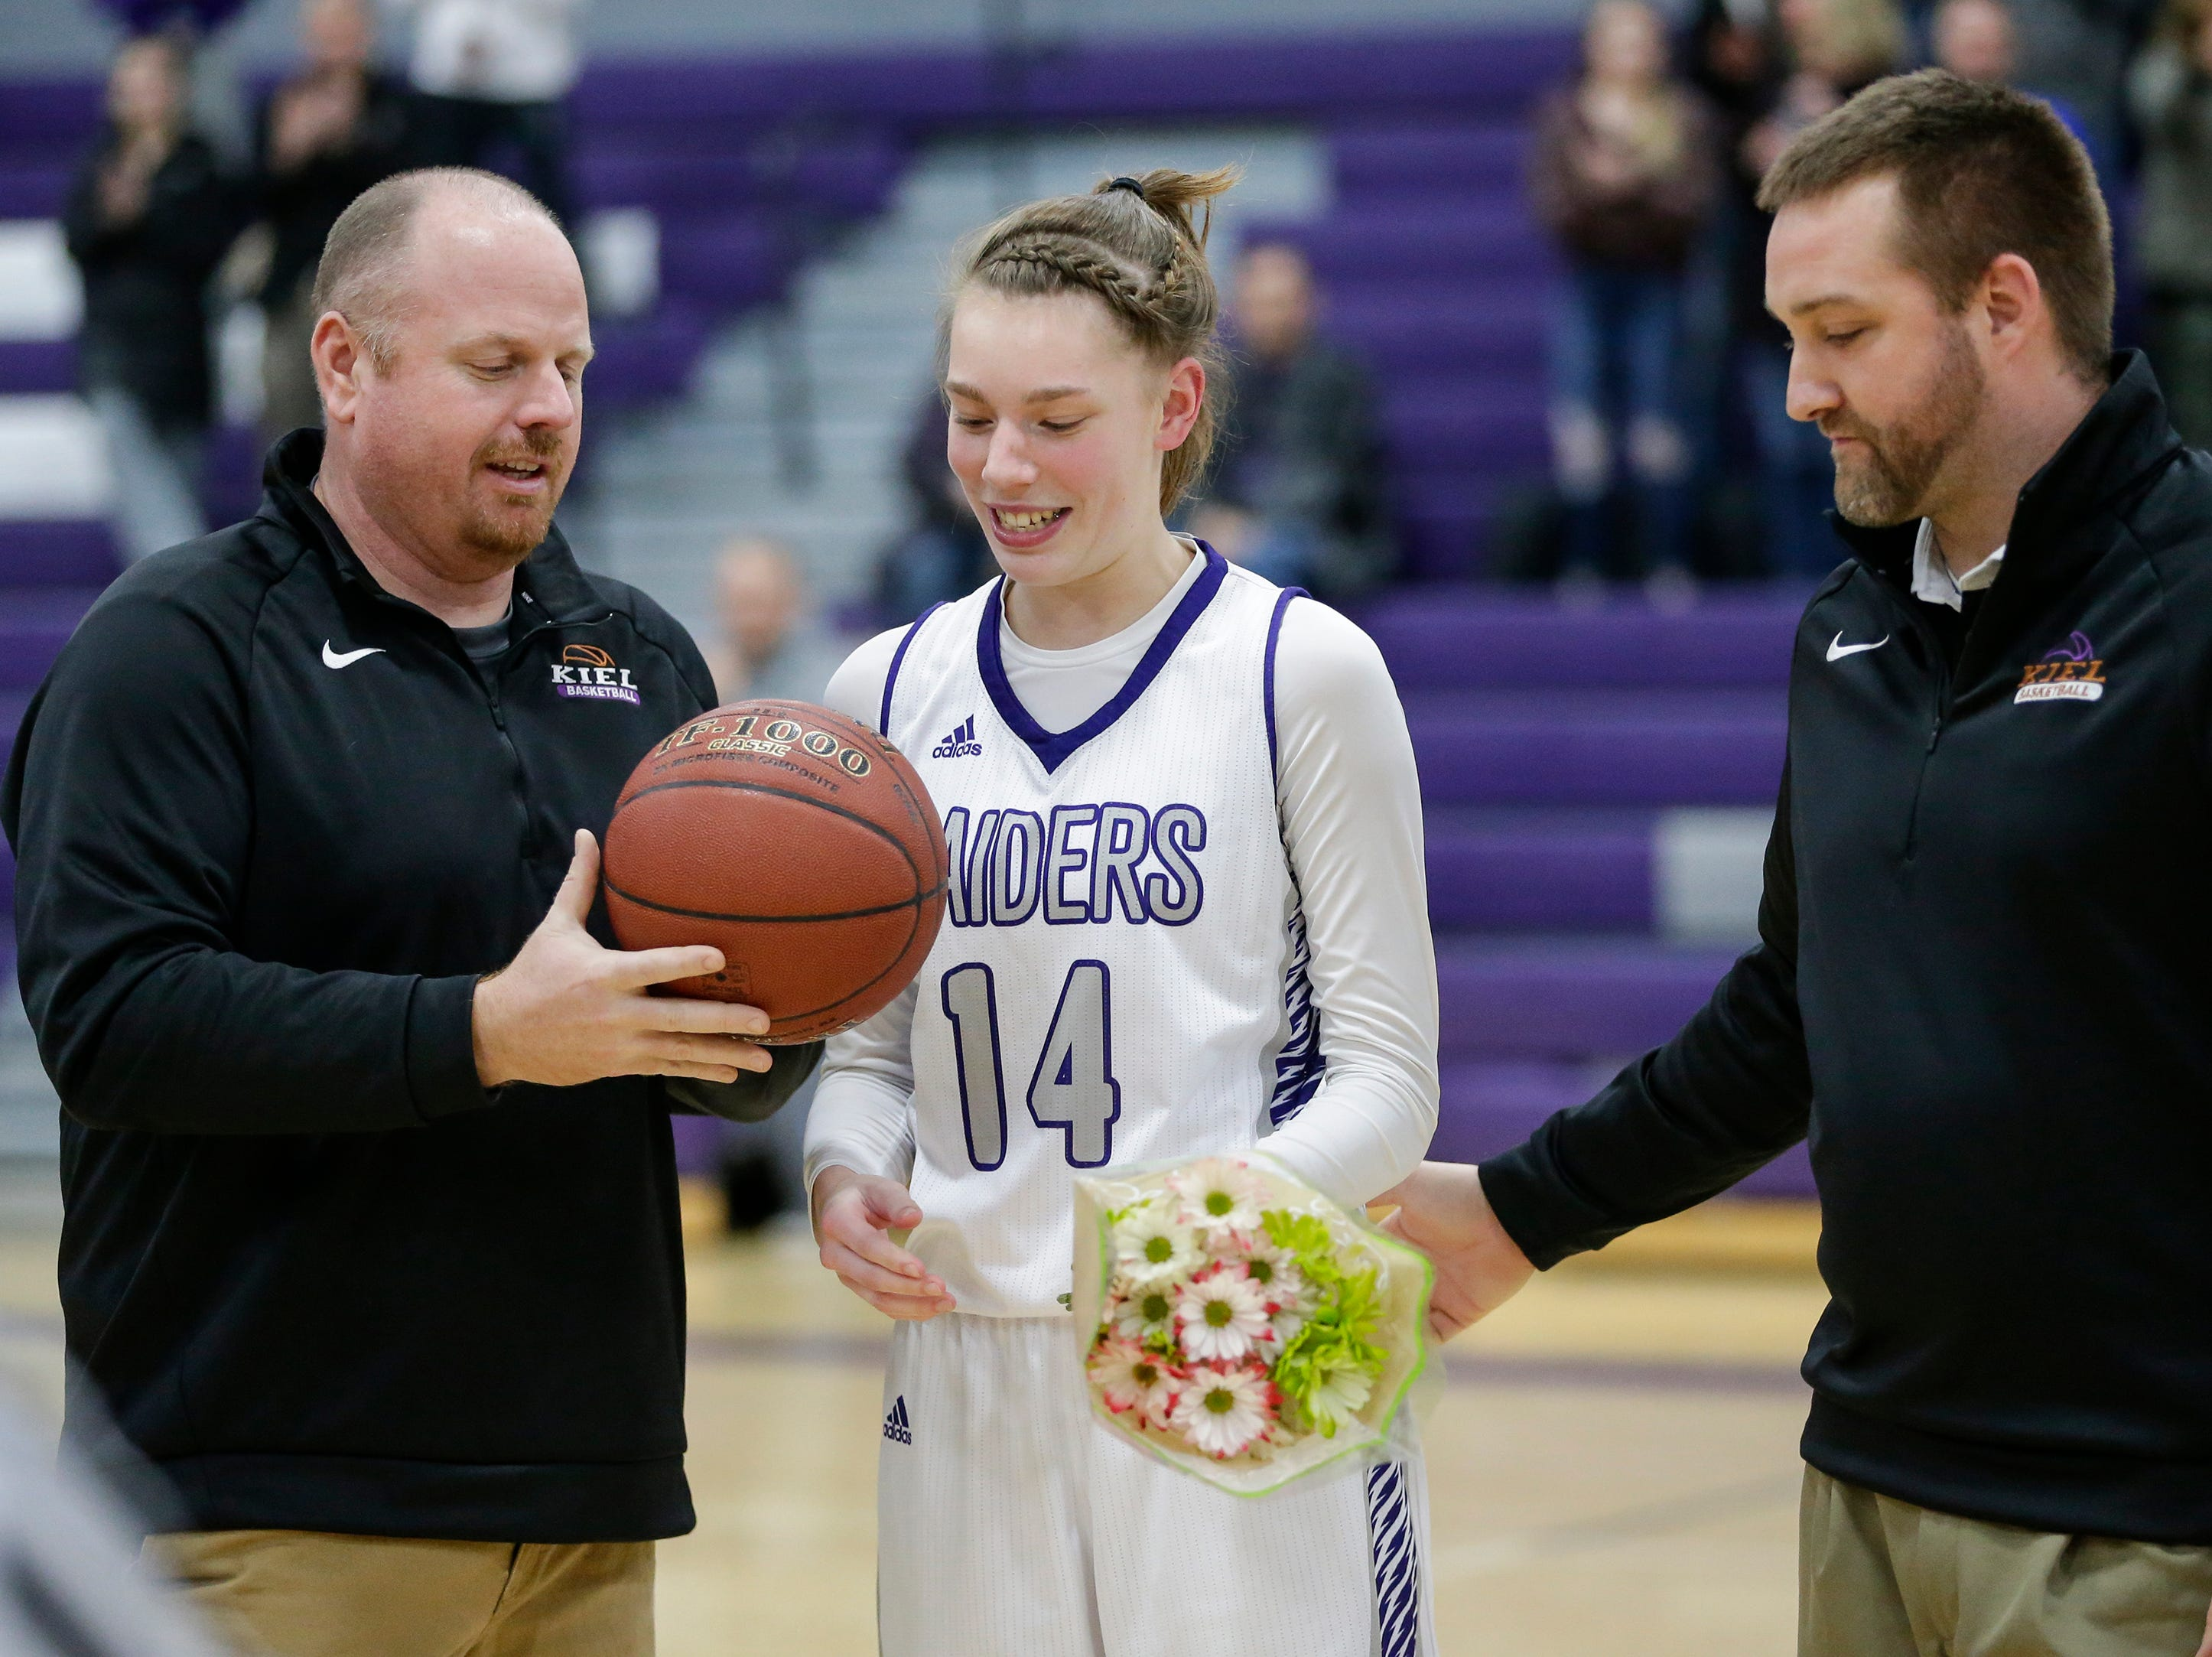 Kiel's Savannah Walsdorf (14) is recognized for being the Raiders' first girl basketball player to join the 1,000 point club before an EWC matchup against Roncalli at Kiel High School Thursday, January 17, 2019, in Kiel, Wis. Joshua Clark/USA TODAY NETWORK-Wisconsin